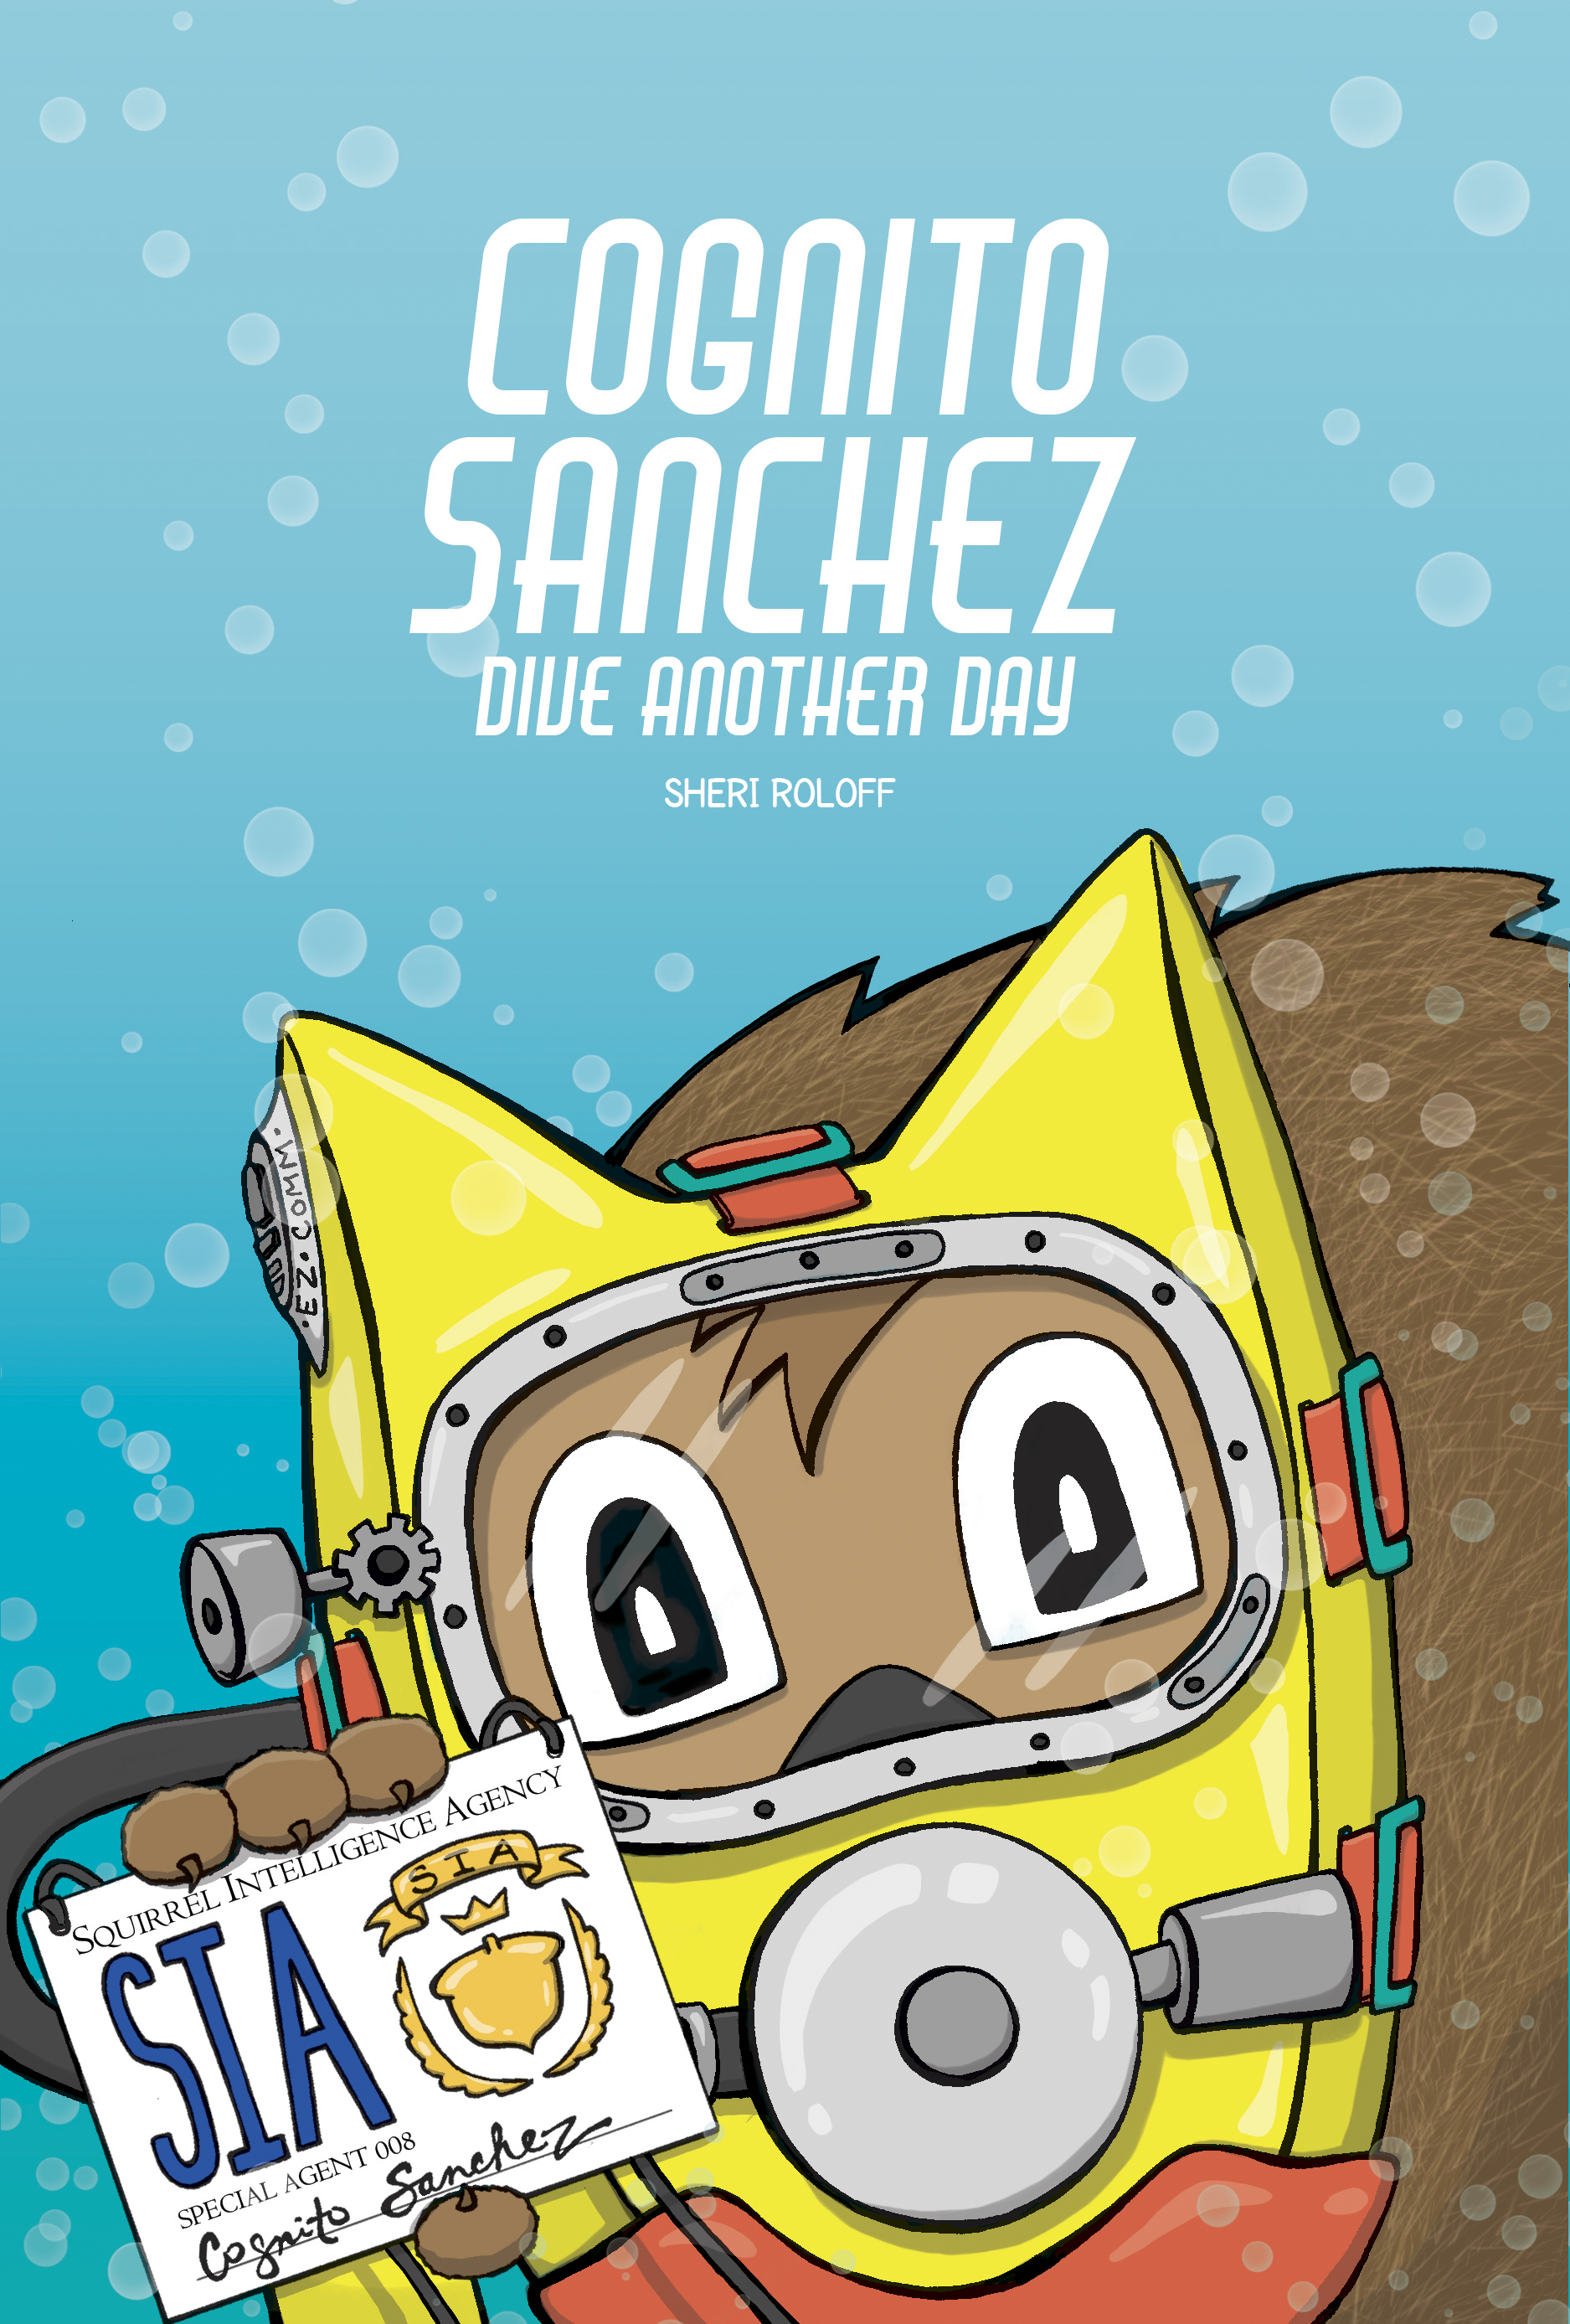 Cognito Sanchez - I'm working on a graphic novel for ages 7 to 10 called COGNITO SANCHEZ: DIVE ANOTHER DAY. I like to describe it as James Bond meets Zootopia with a mockumentary twist.